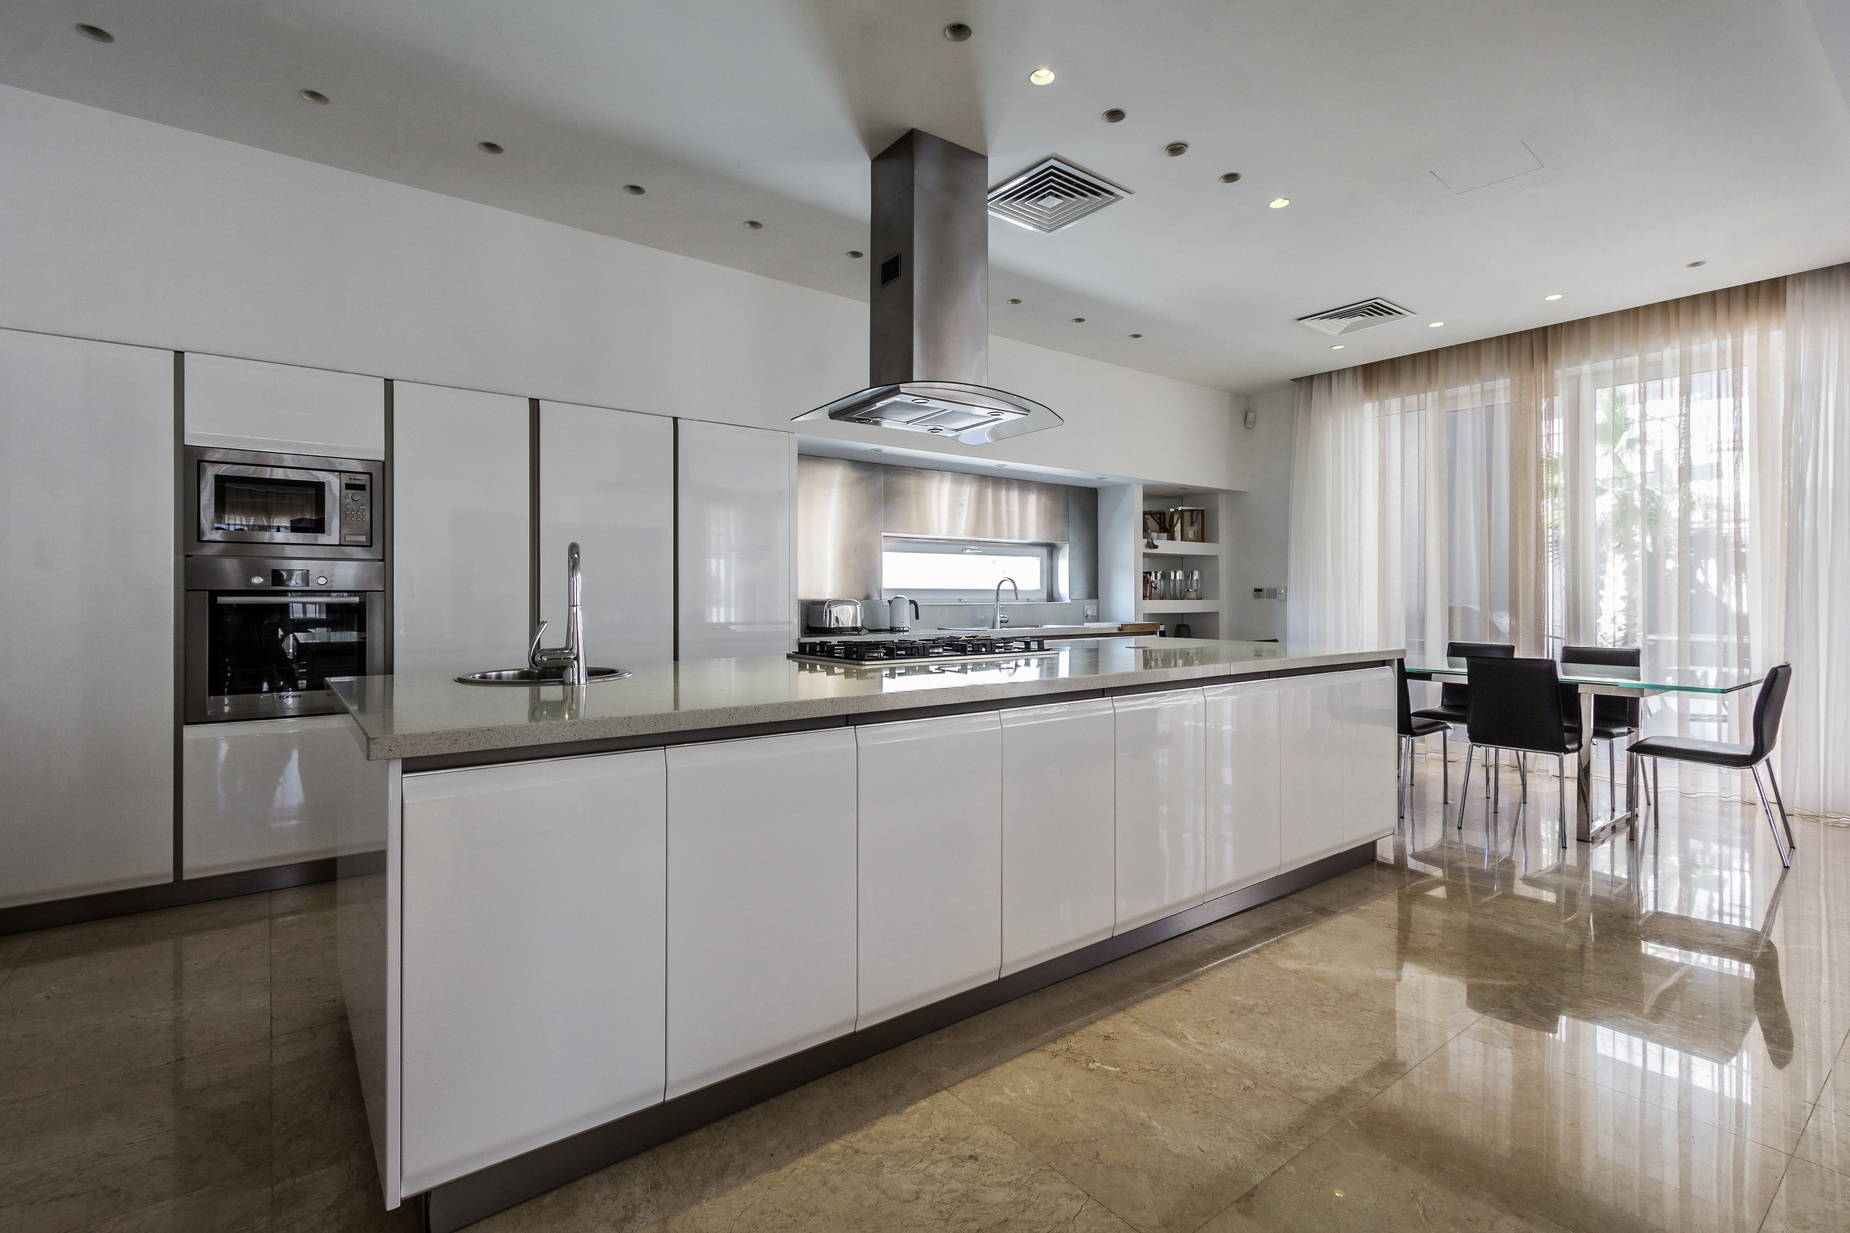 5 bed Villa For Rent in Madliena, Madliena - thumb 13